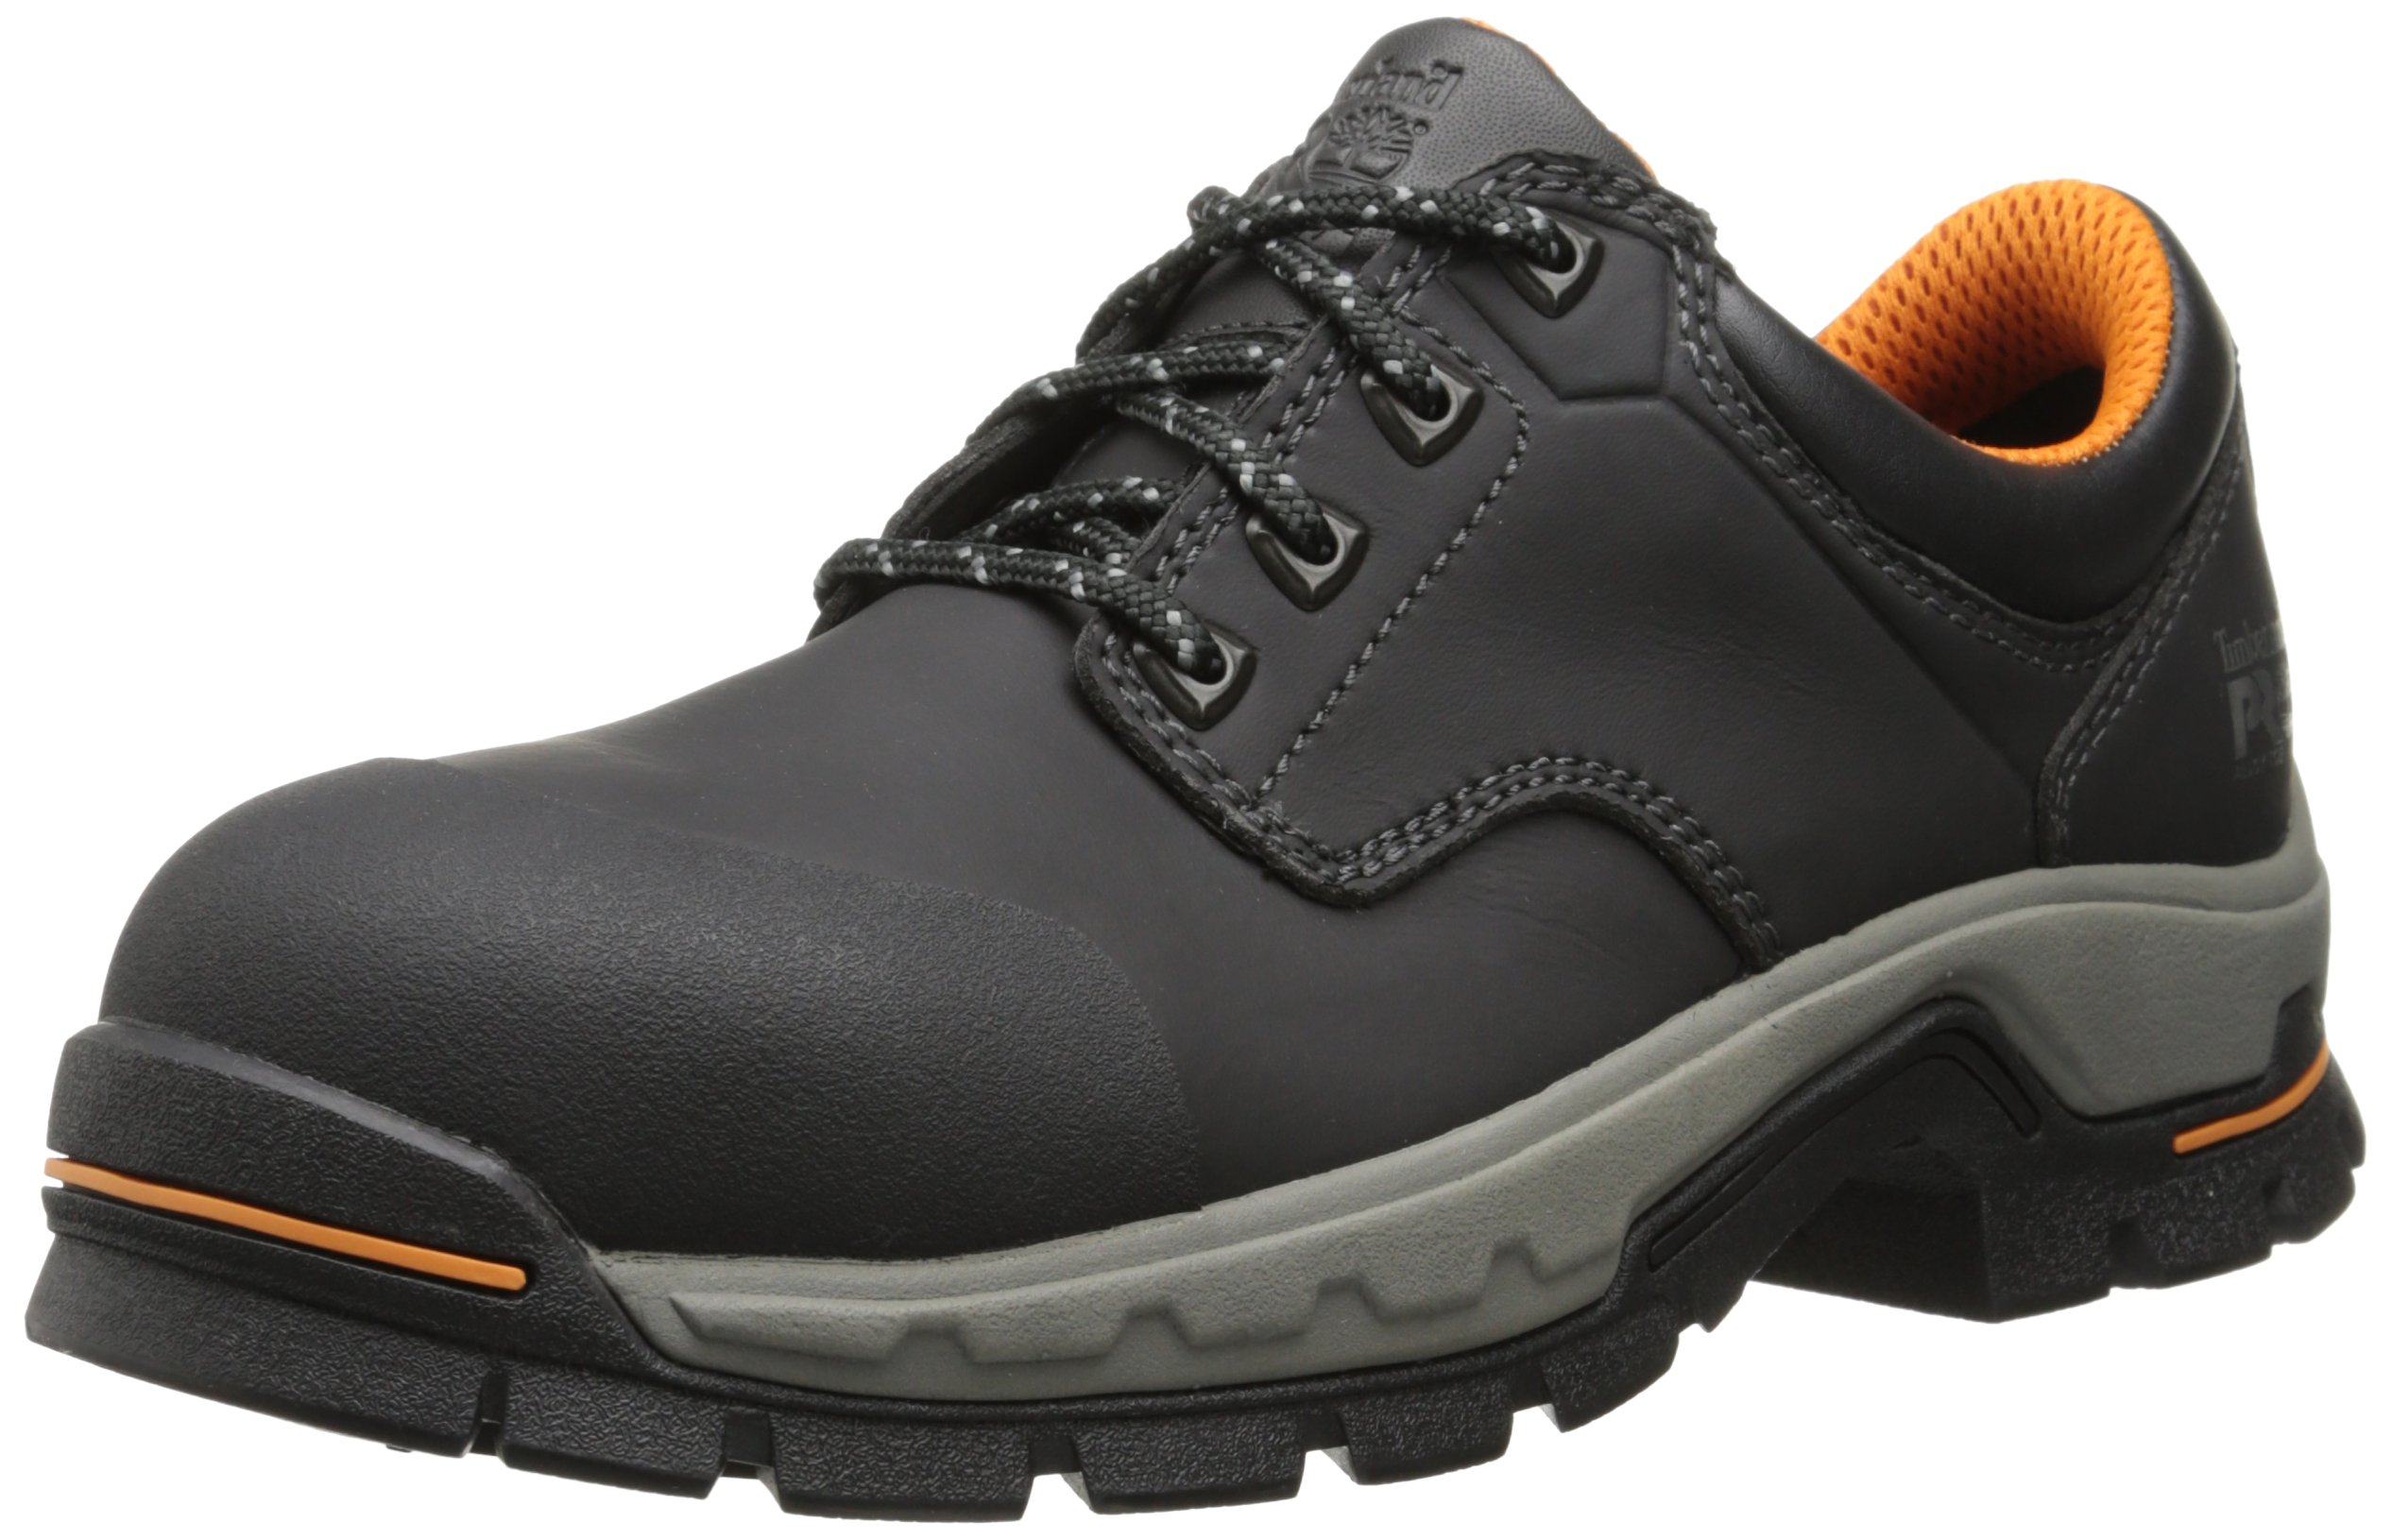 Timberland PRO Men's Stockdale Grip Max OX Alloy Toe Work and Hunt Boot, Black Microfiber, 9.5 M US by Timberland PRO